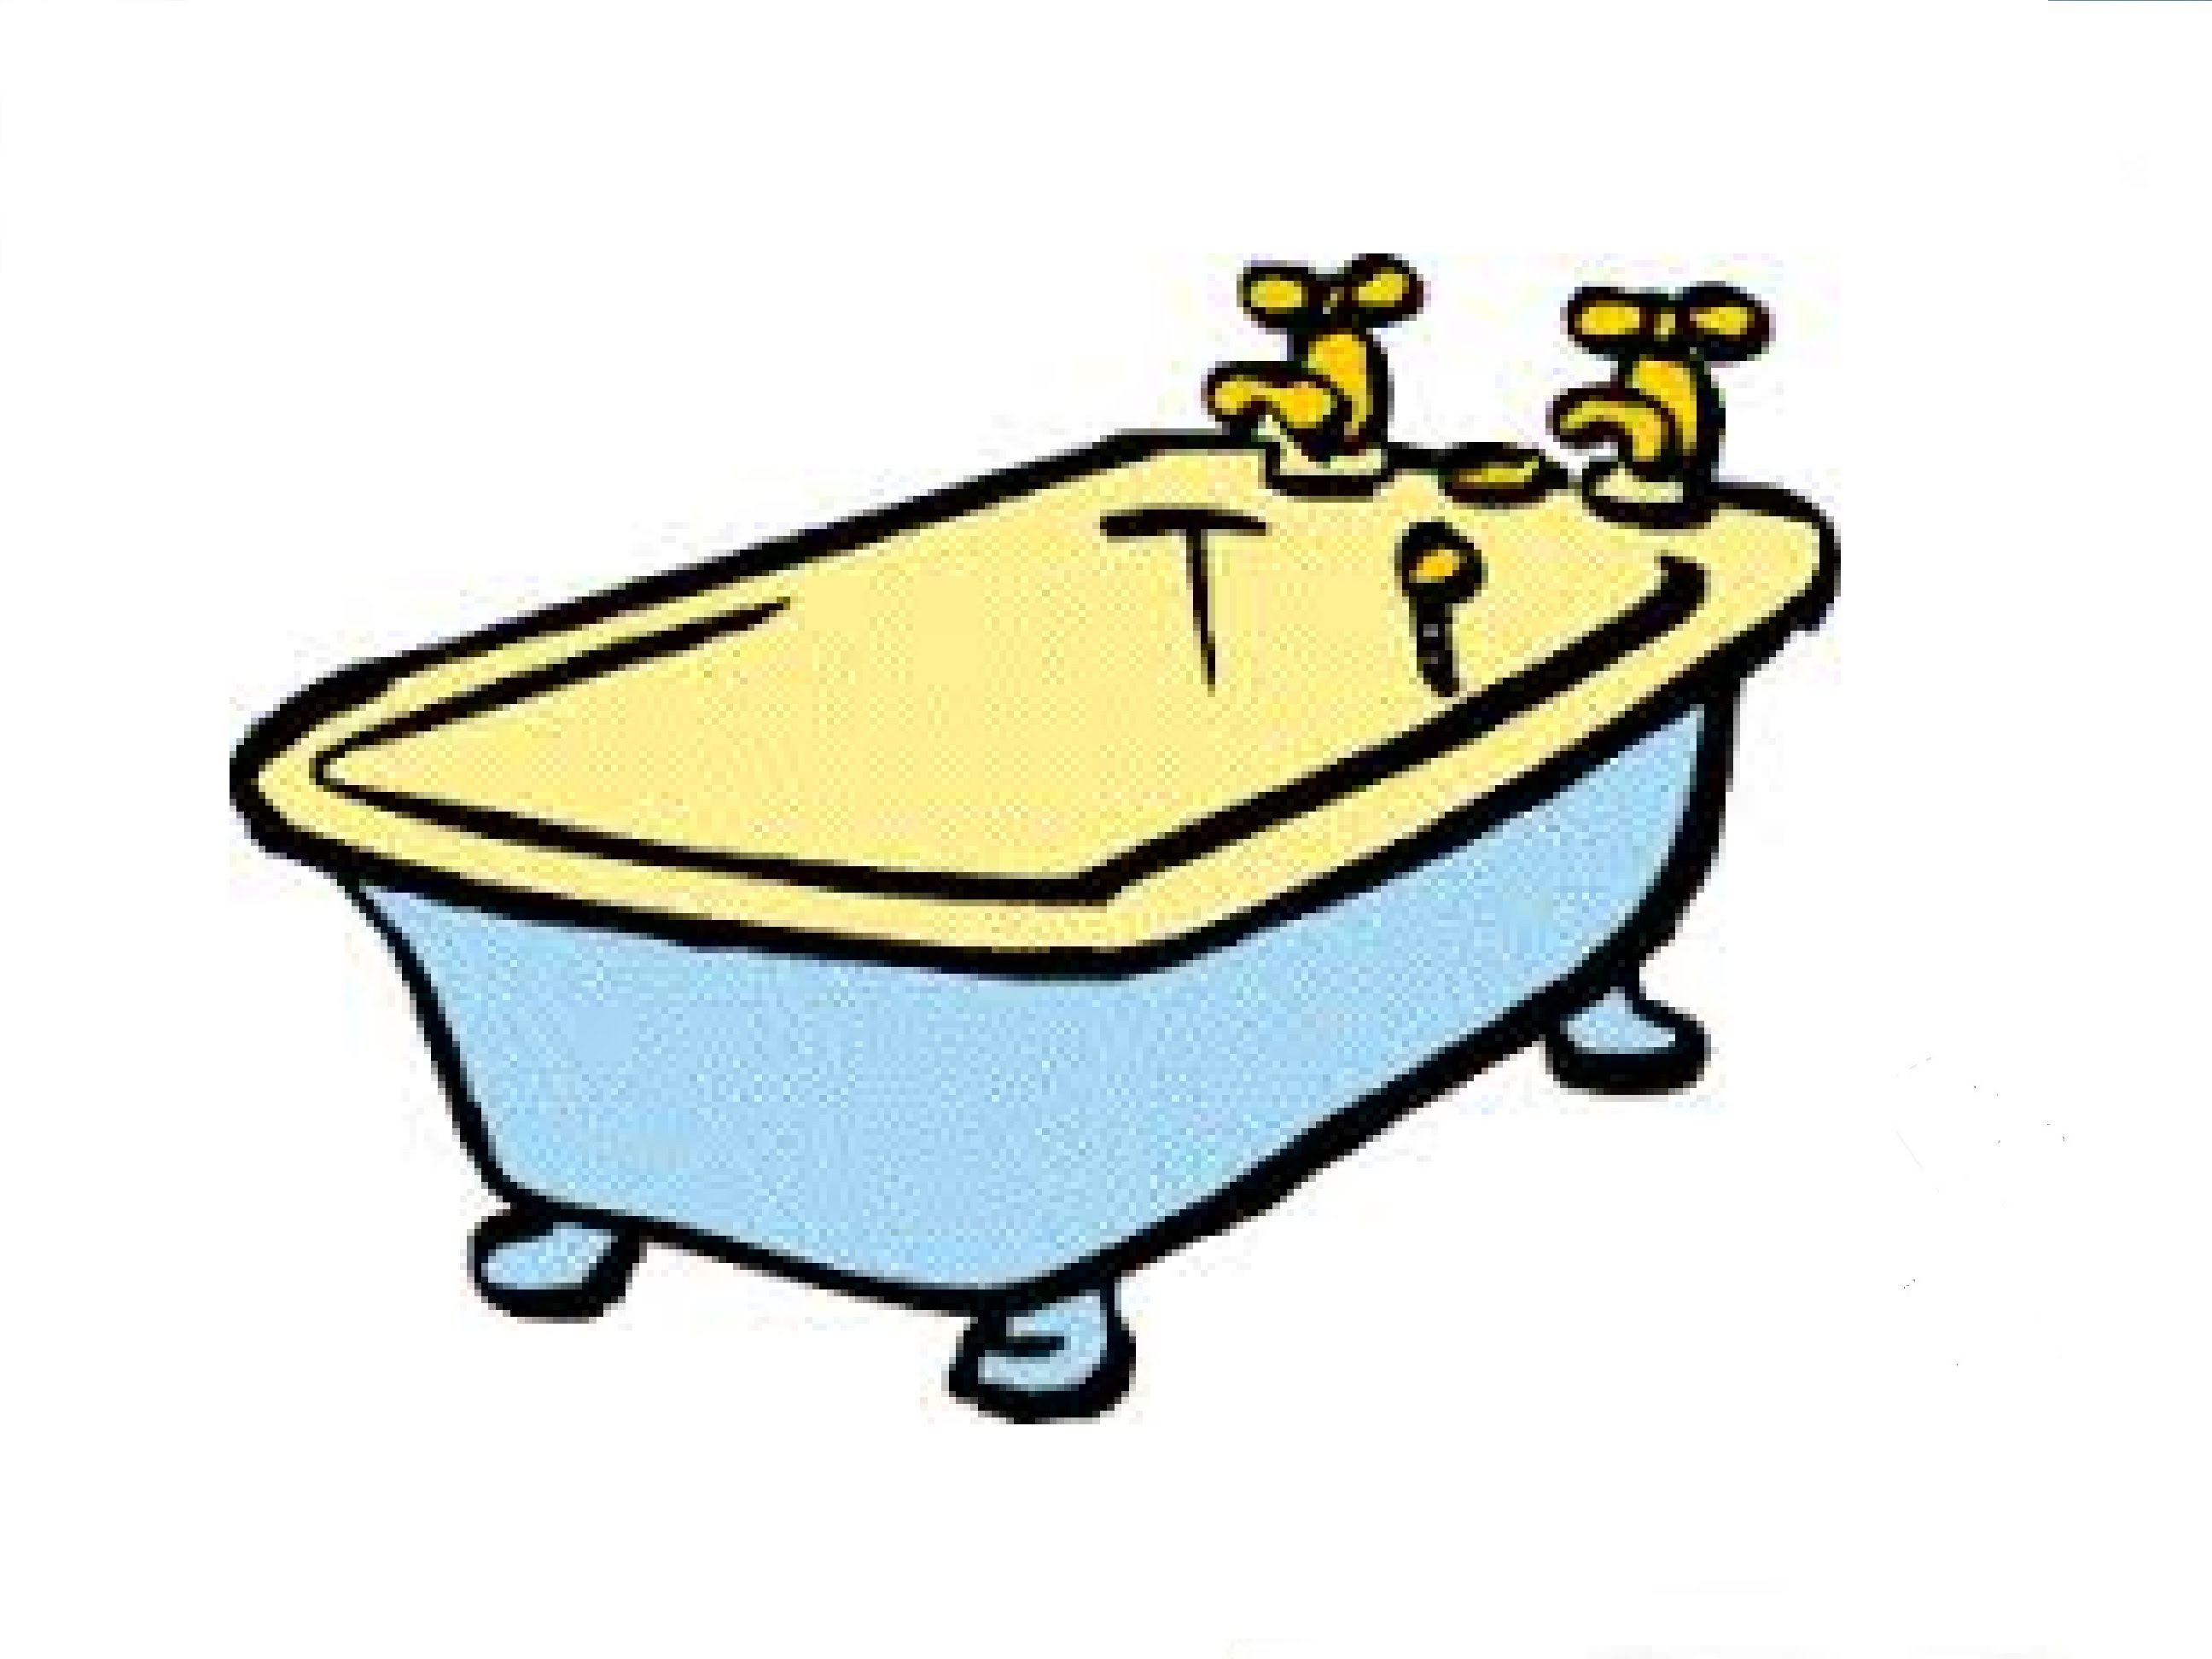 tub drawing at getdrawings com free for personal use tub drawing rh getdrawings com tub clipart png tube clipart black and white